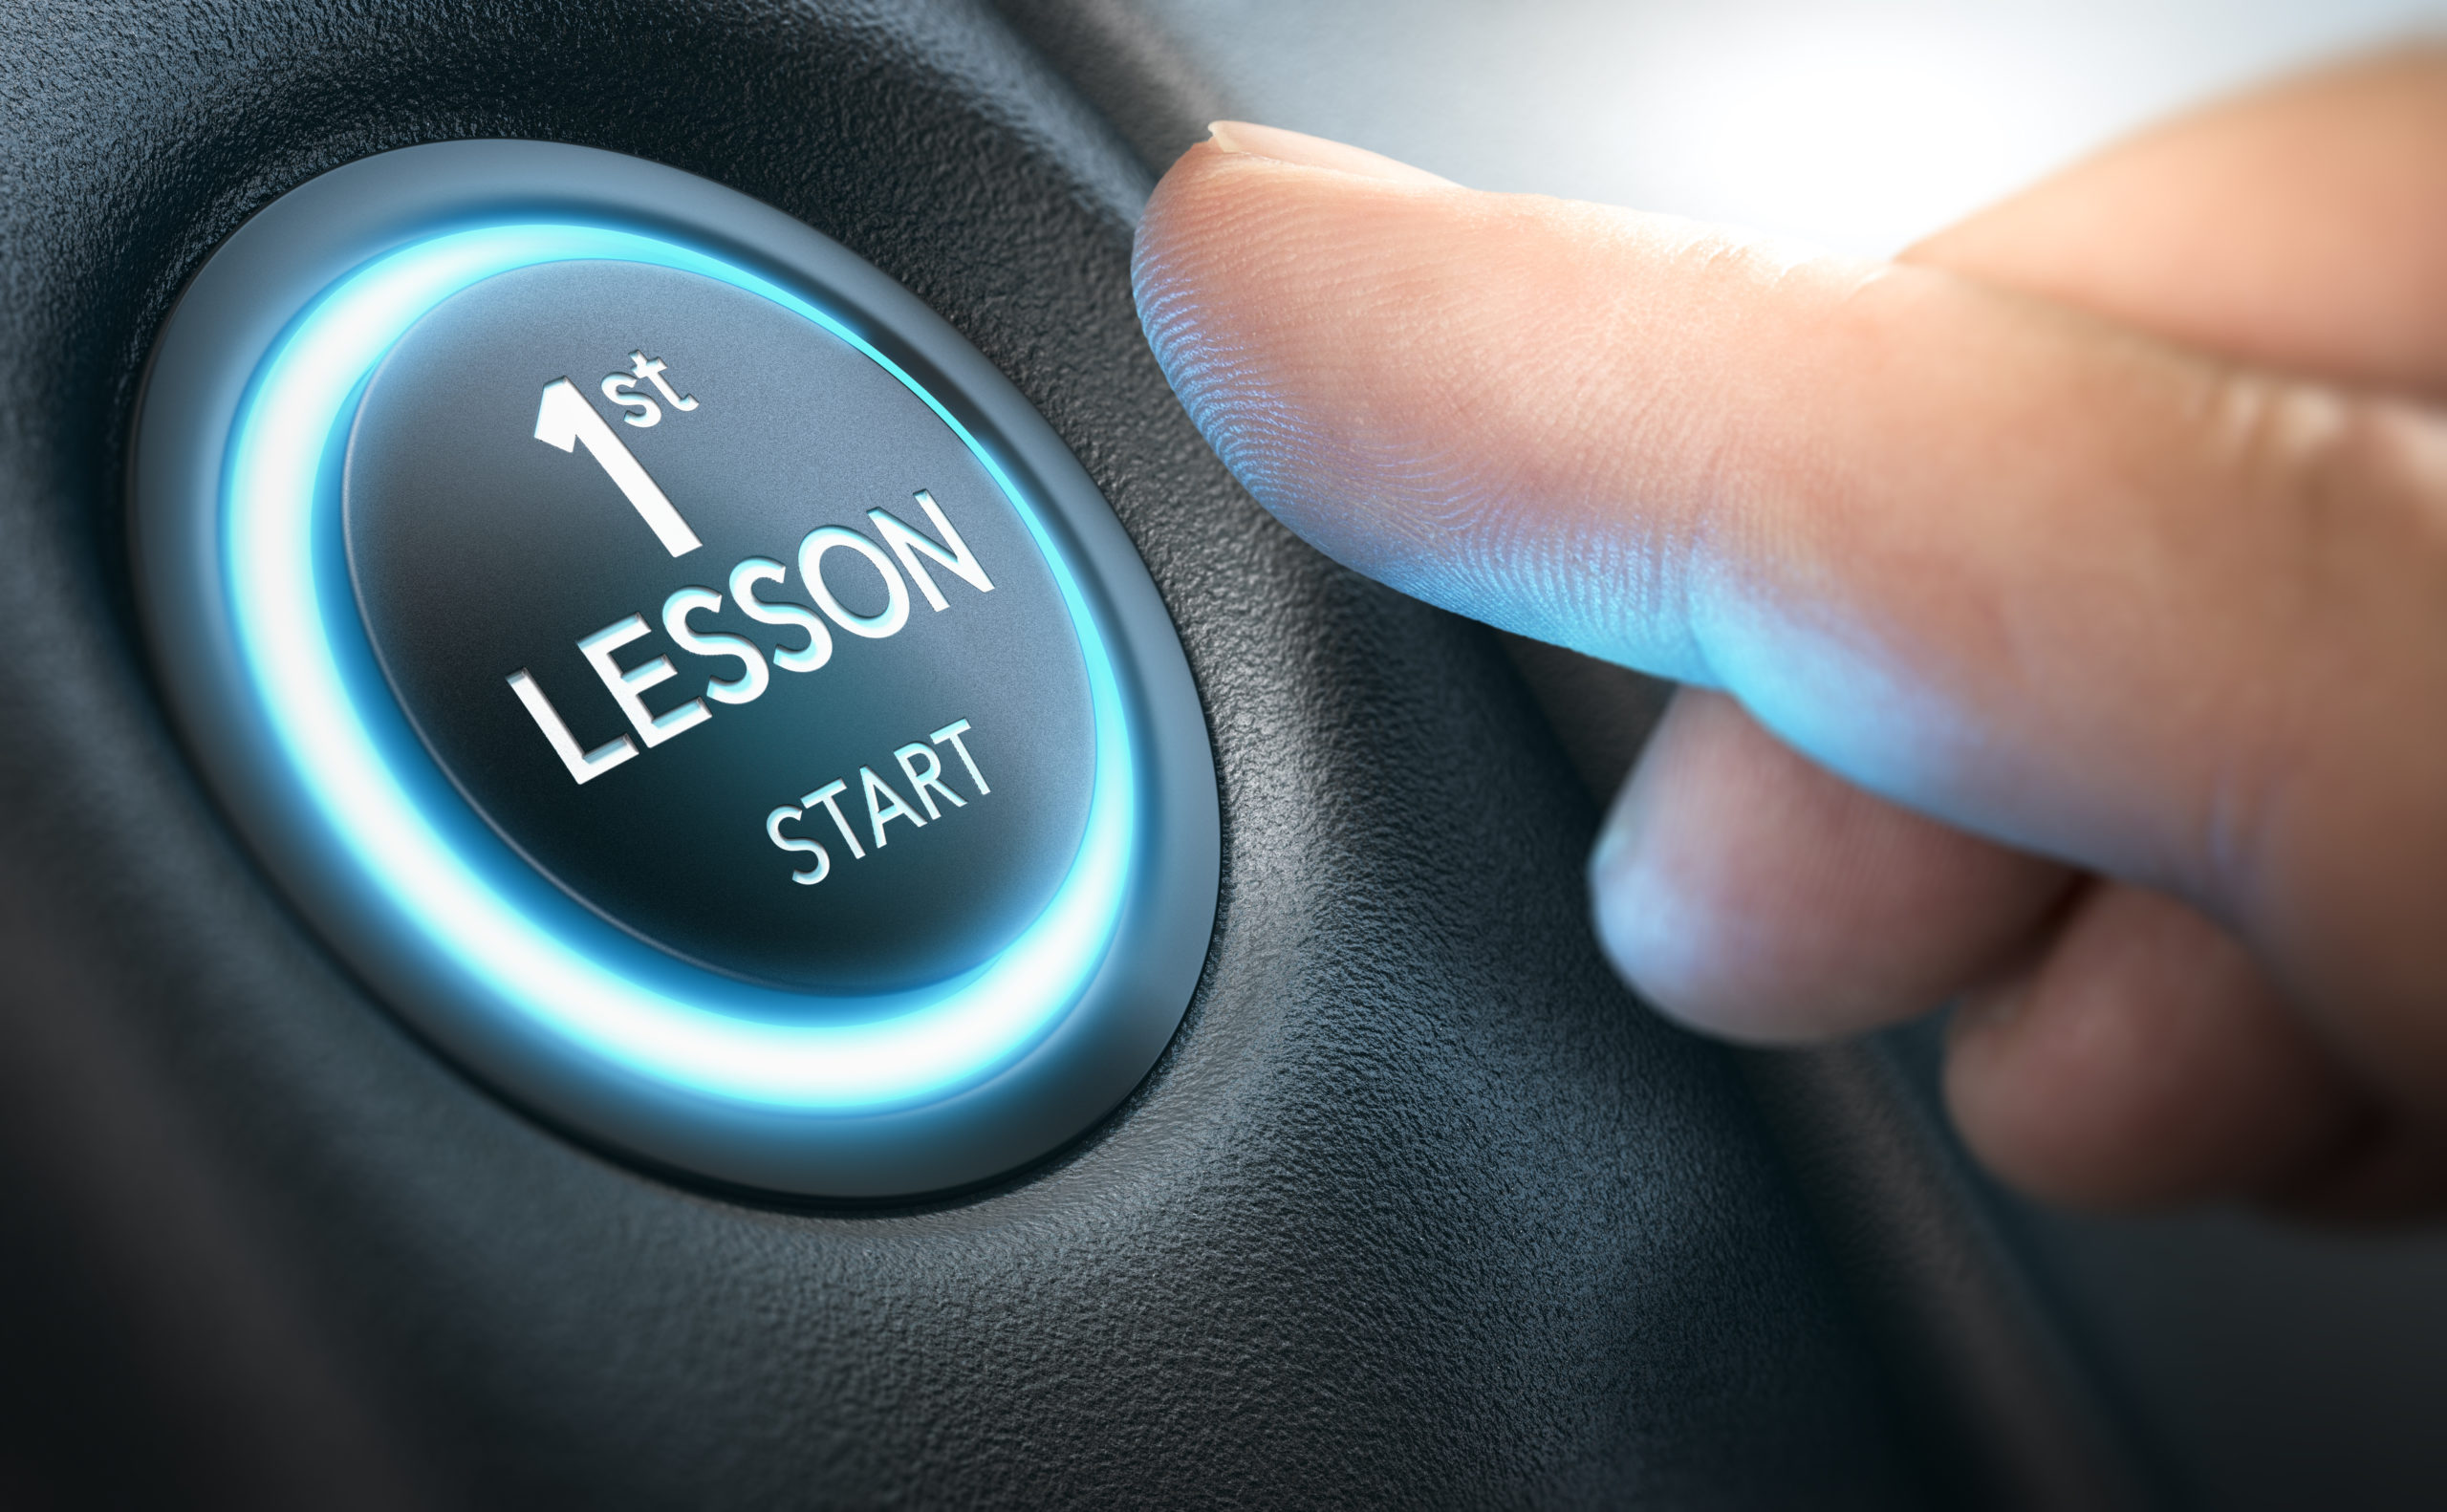 First Lesson button for driving licence